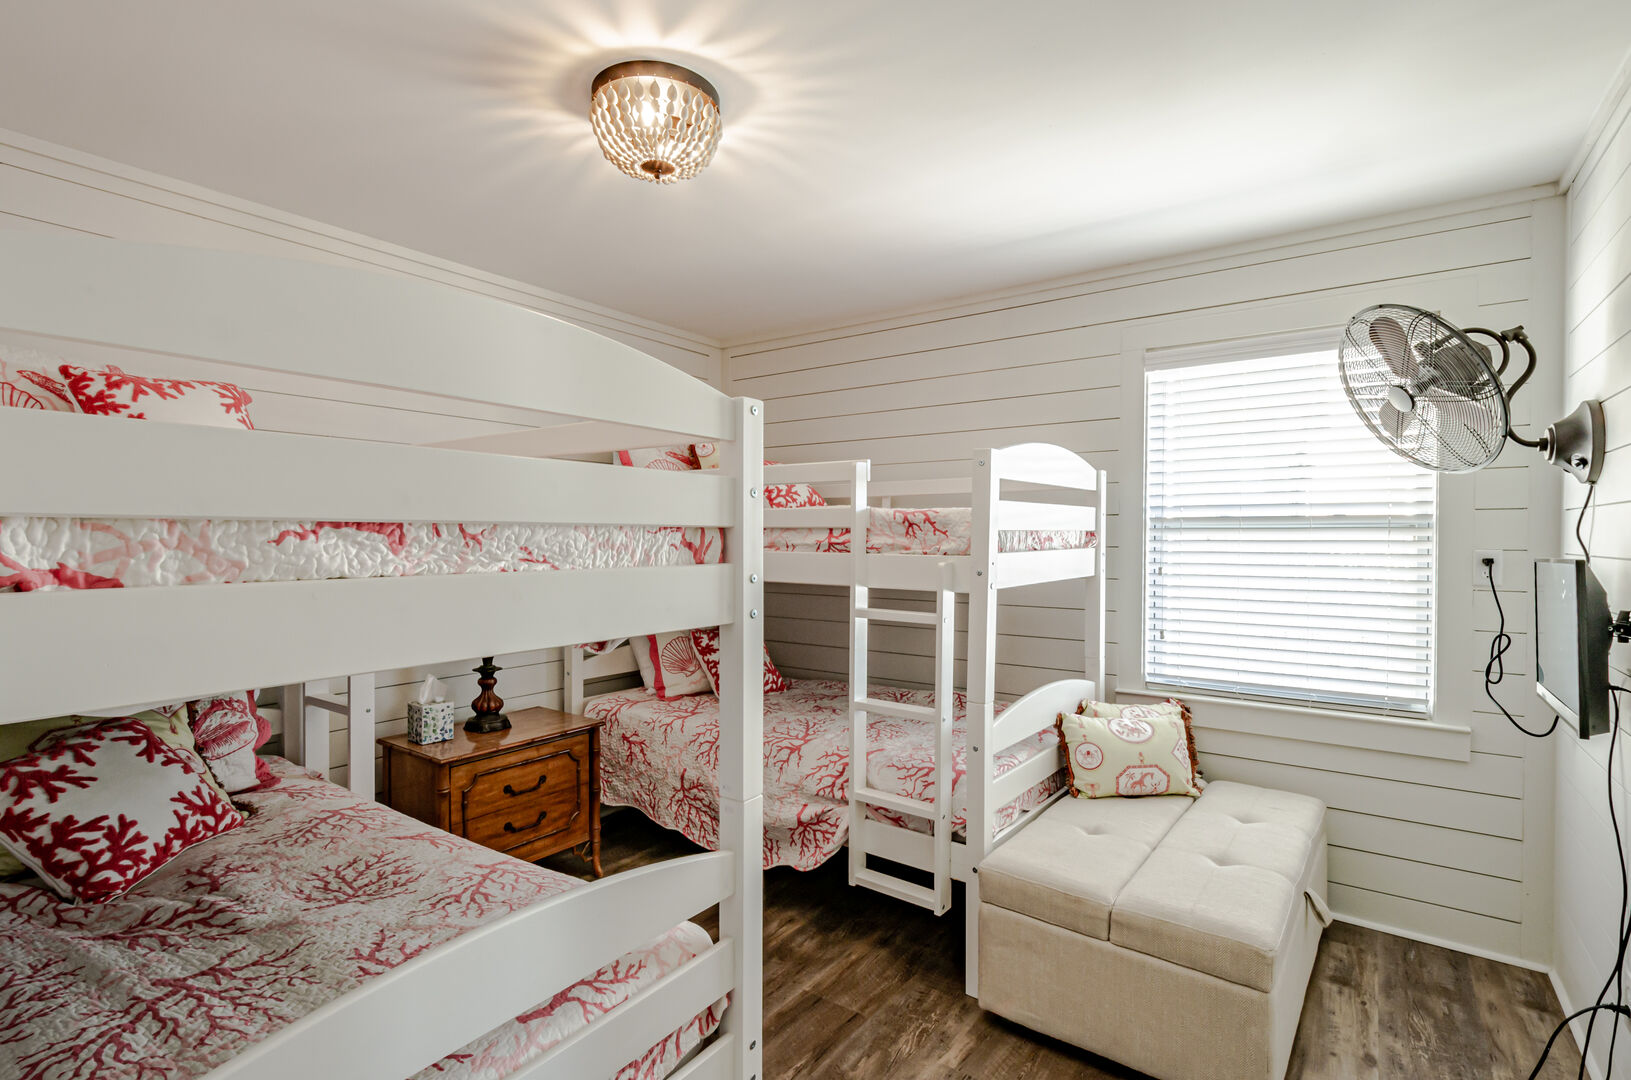 Bedroom 2 features 2 sets of twin bunks.